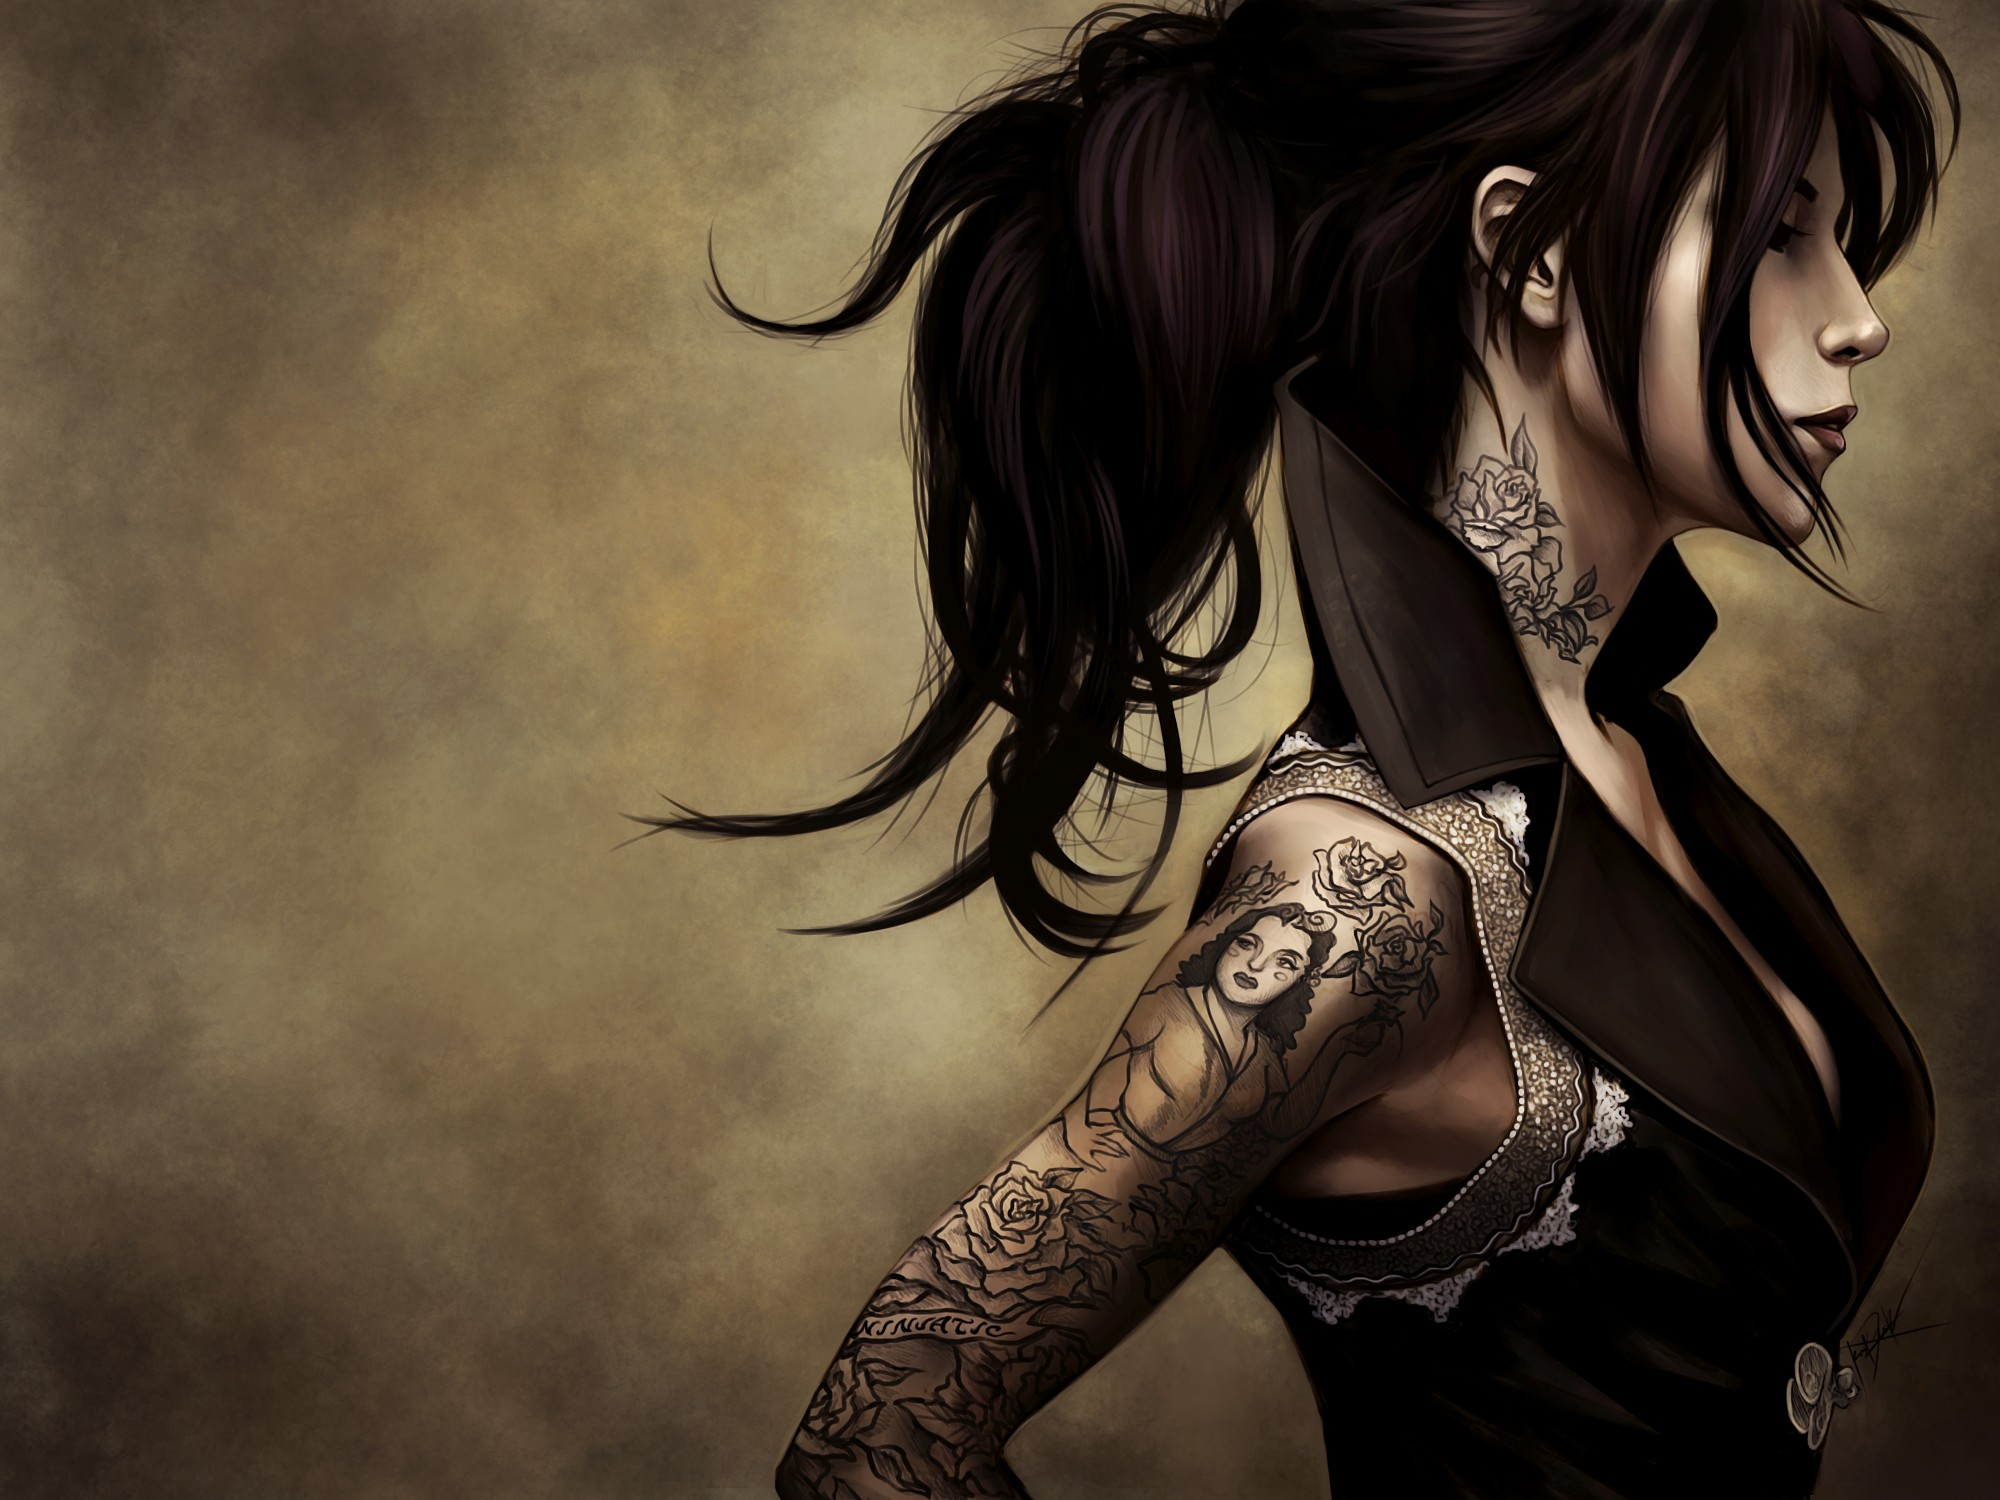 Tattoo Girl Von - Hd wallpaper background id 199814